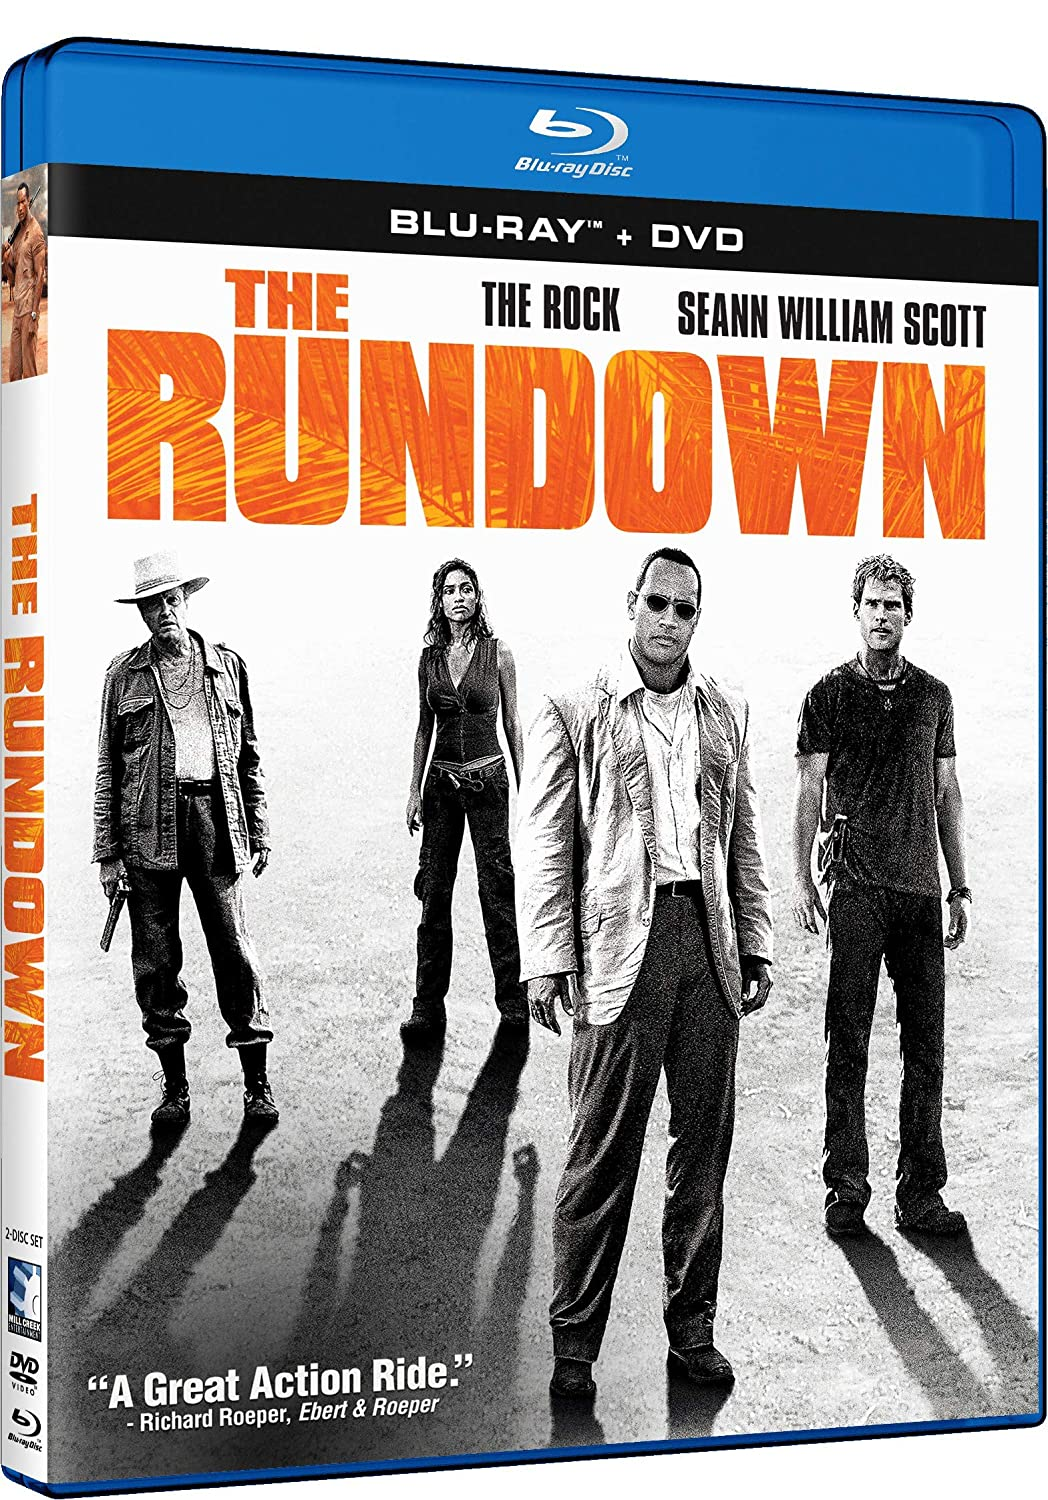 Amazon com: The Rundown [Blu-ray]: Dwayne